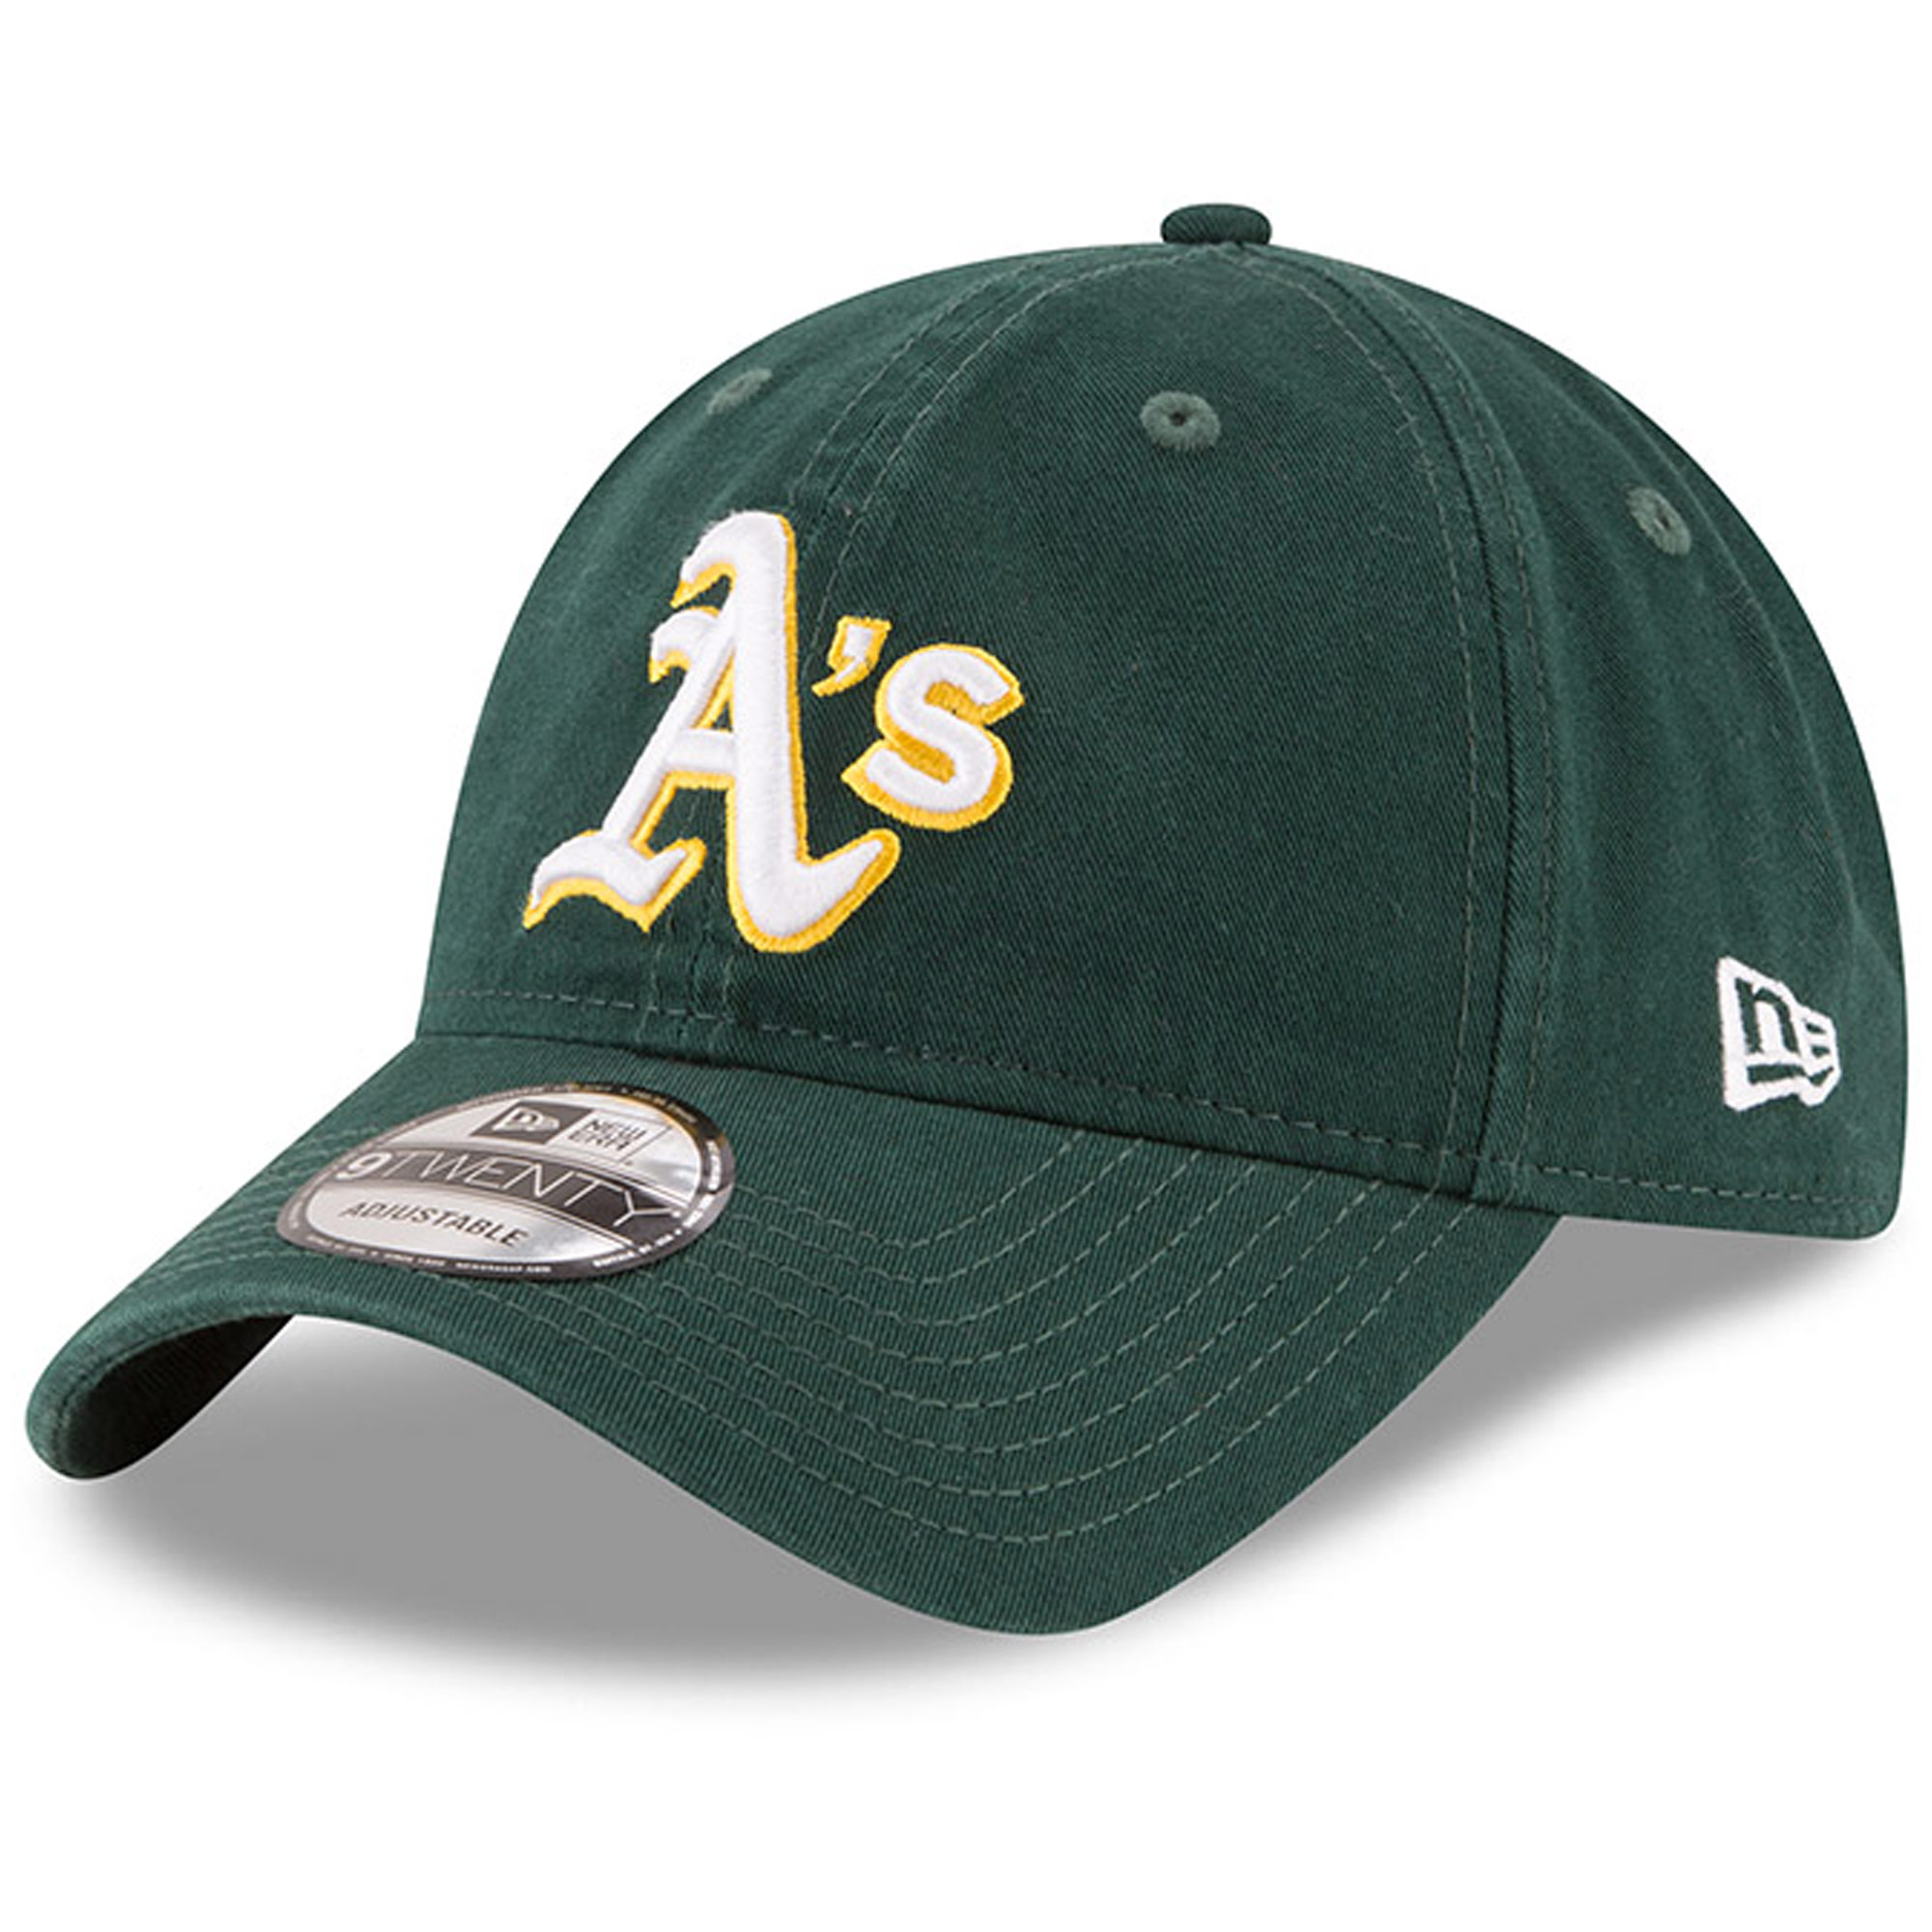 Oakland Athletics New Era Road Replica Core Classic 9TWENTY Adjustable Hat - Green - OSFA